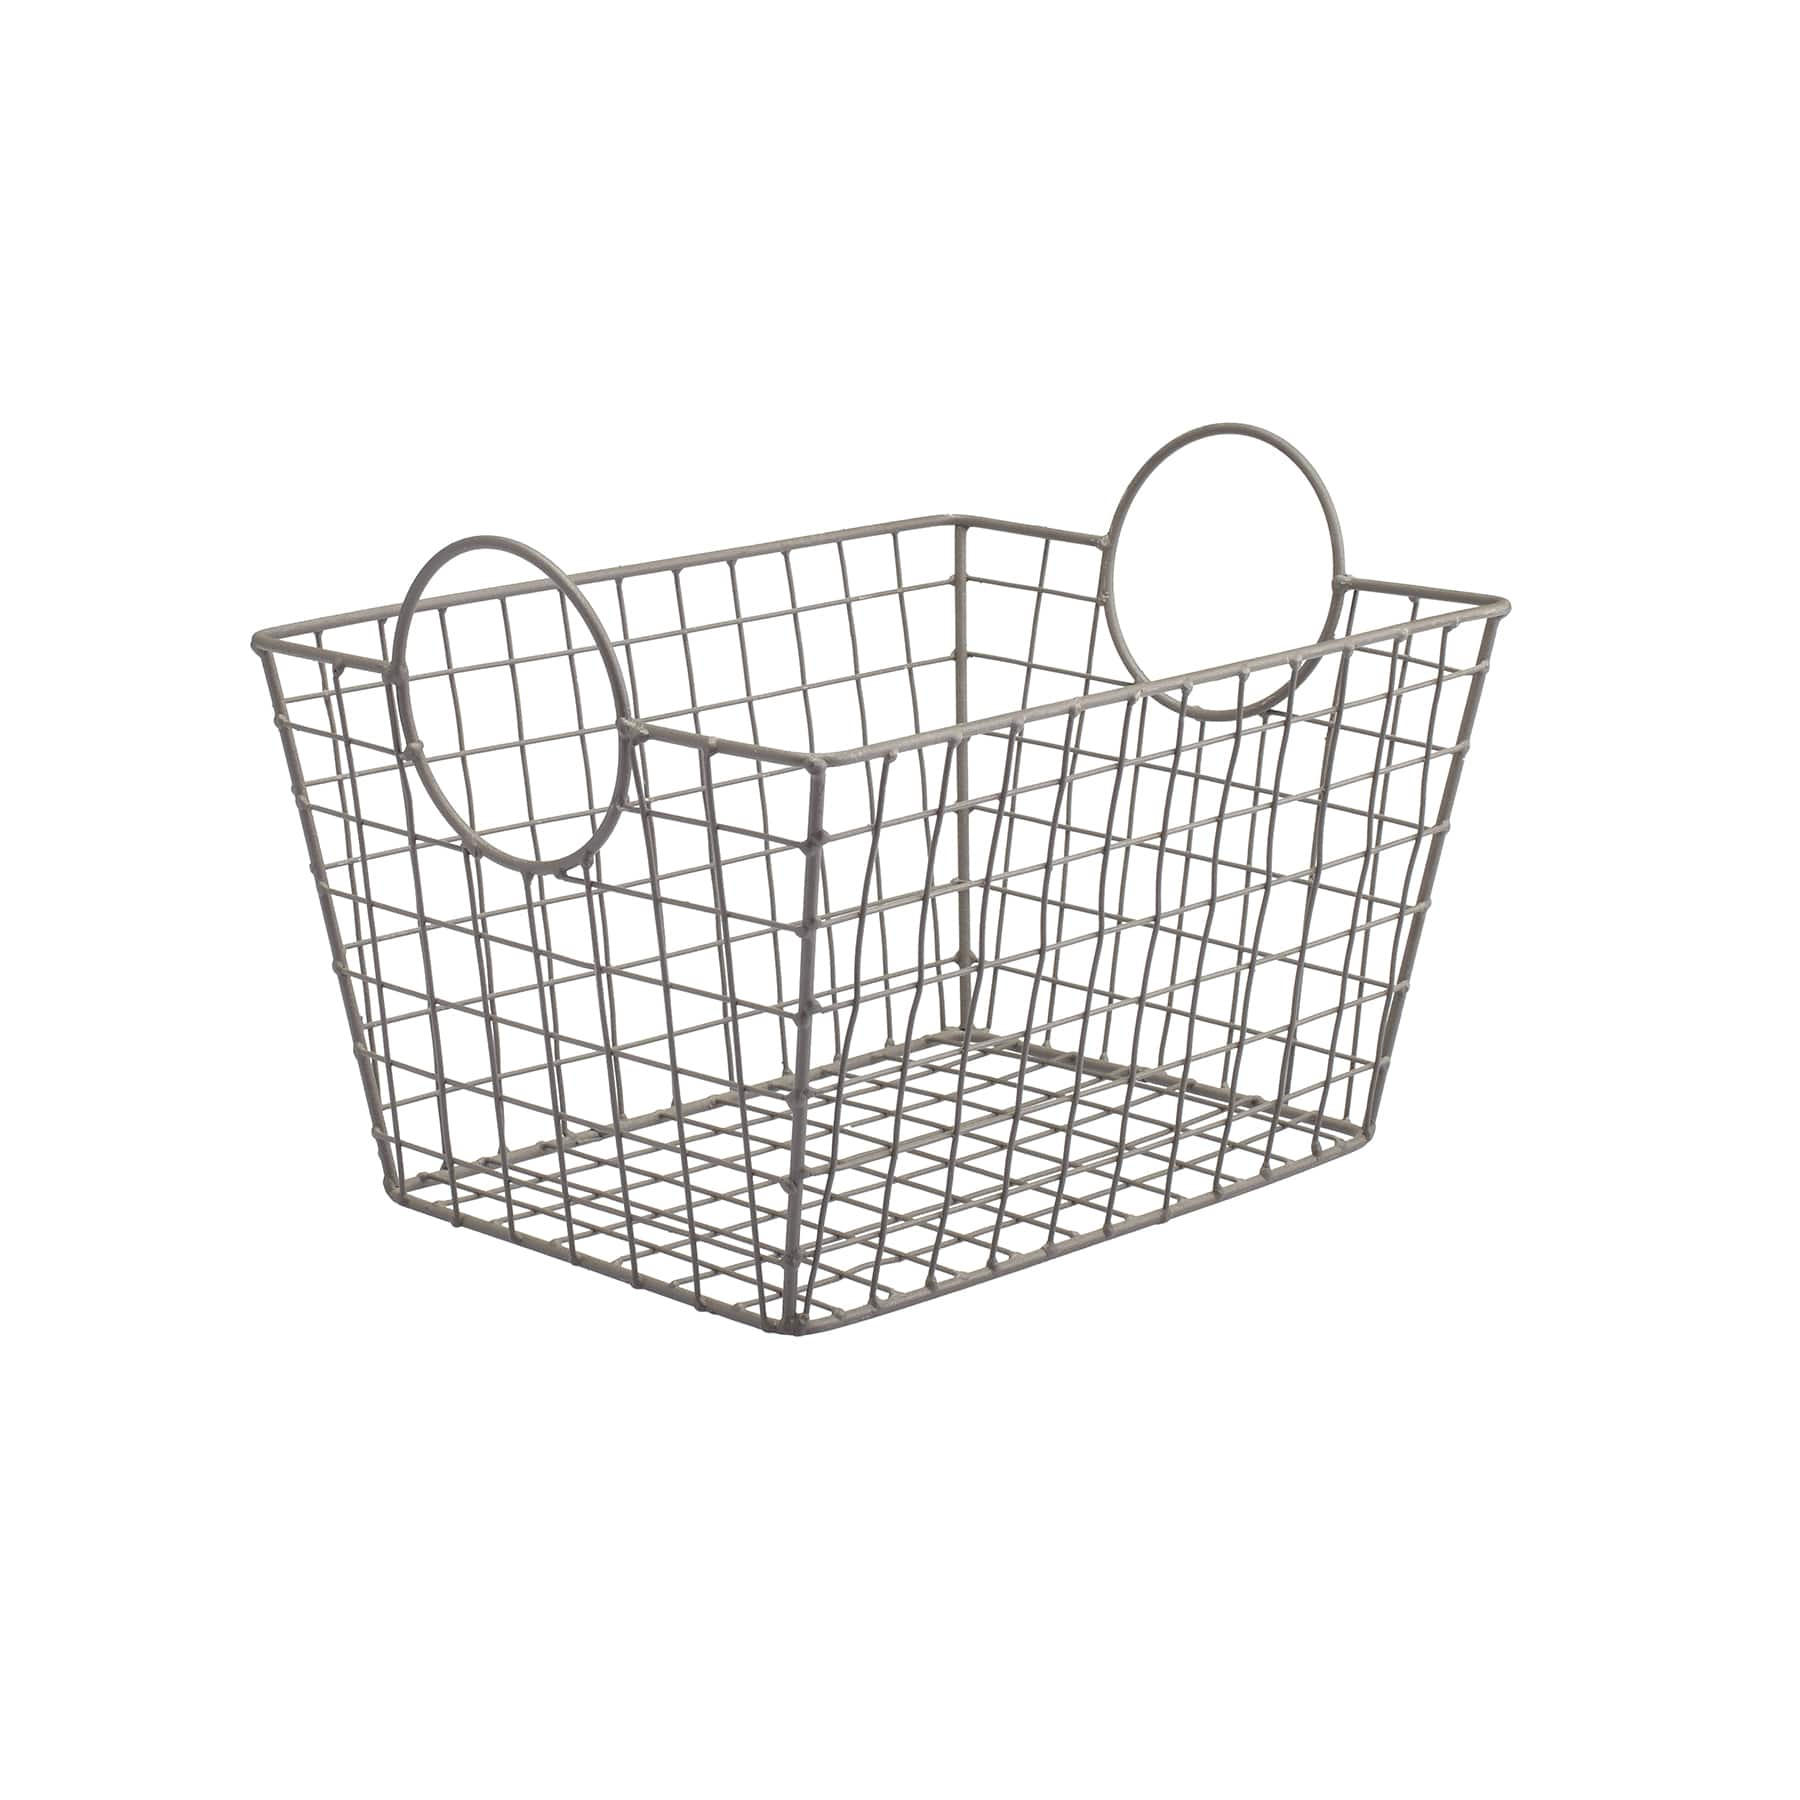 Metal Wire Tapered Storage Basket With Circle Handles by Ashland®  sc 1 st  Michaels Stores & Find the Small Khaki Rectangle Storage Basket By Ashland® at Michaels